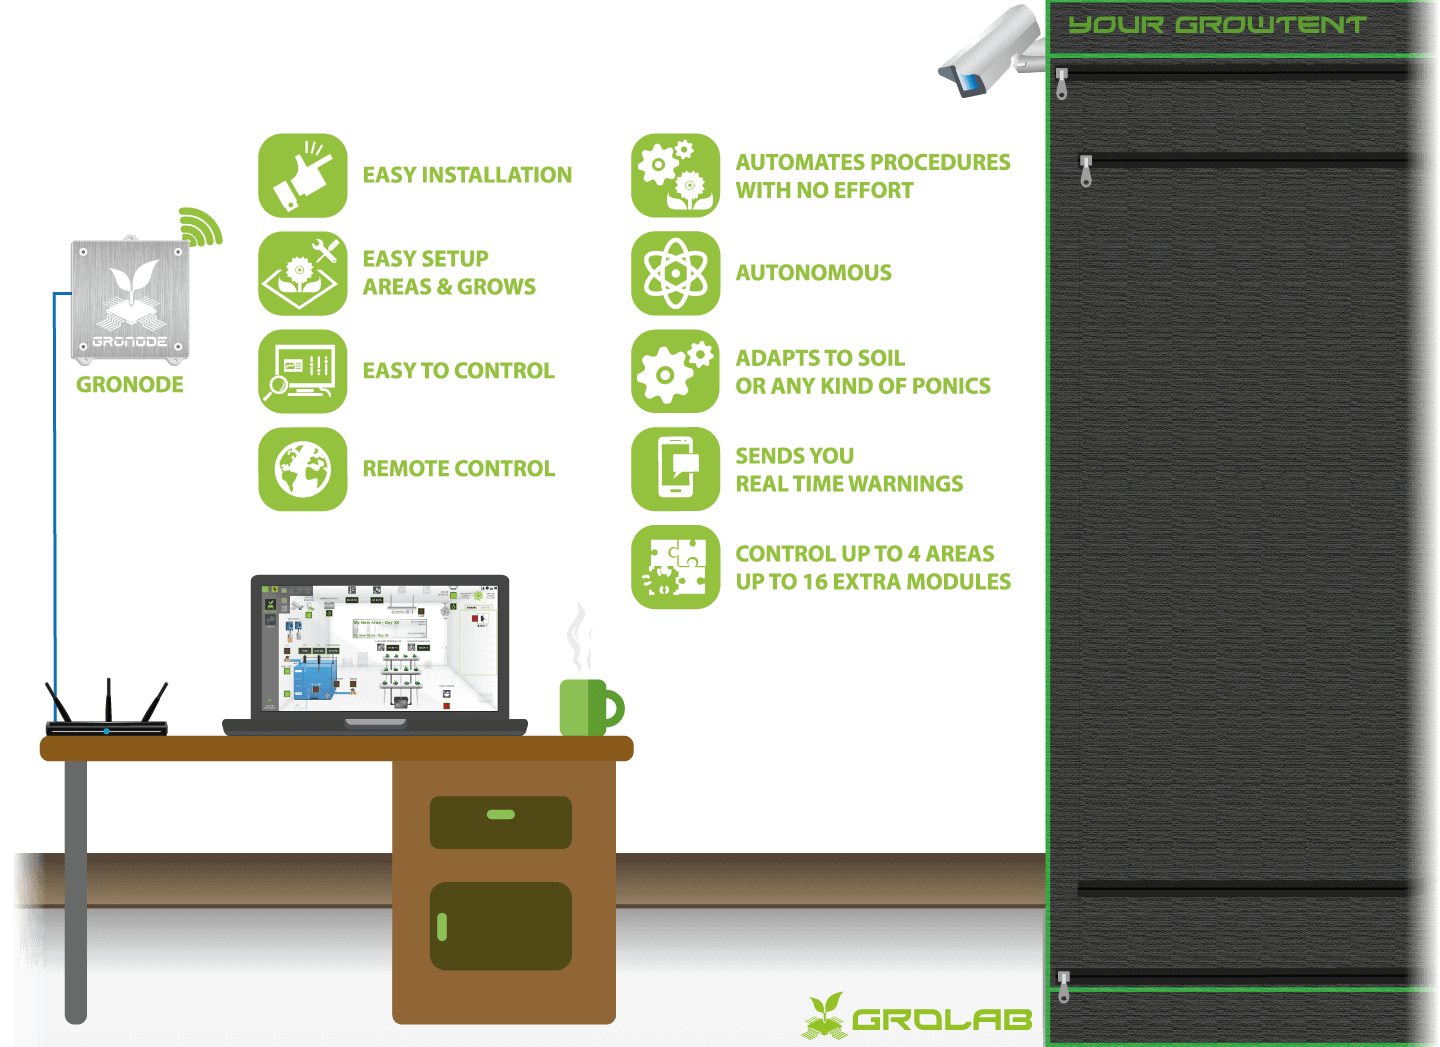 GroNode configuration schematic example, the core module (brain) of the GroLab™ grow controller automation system